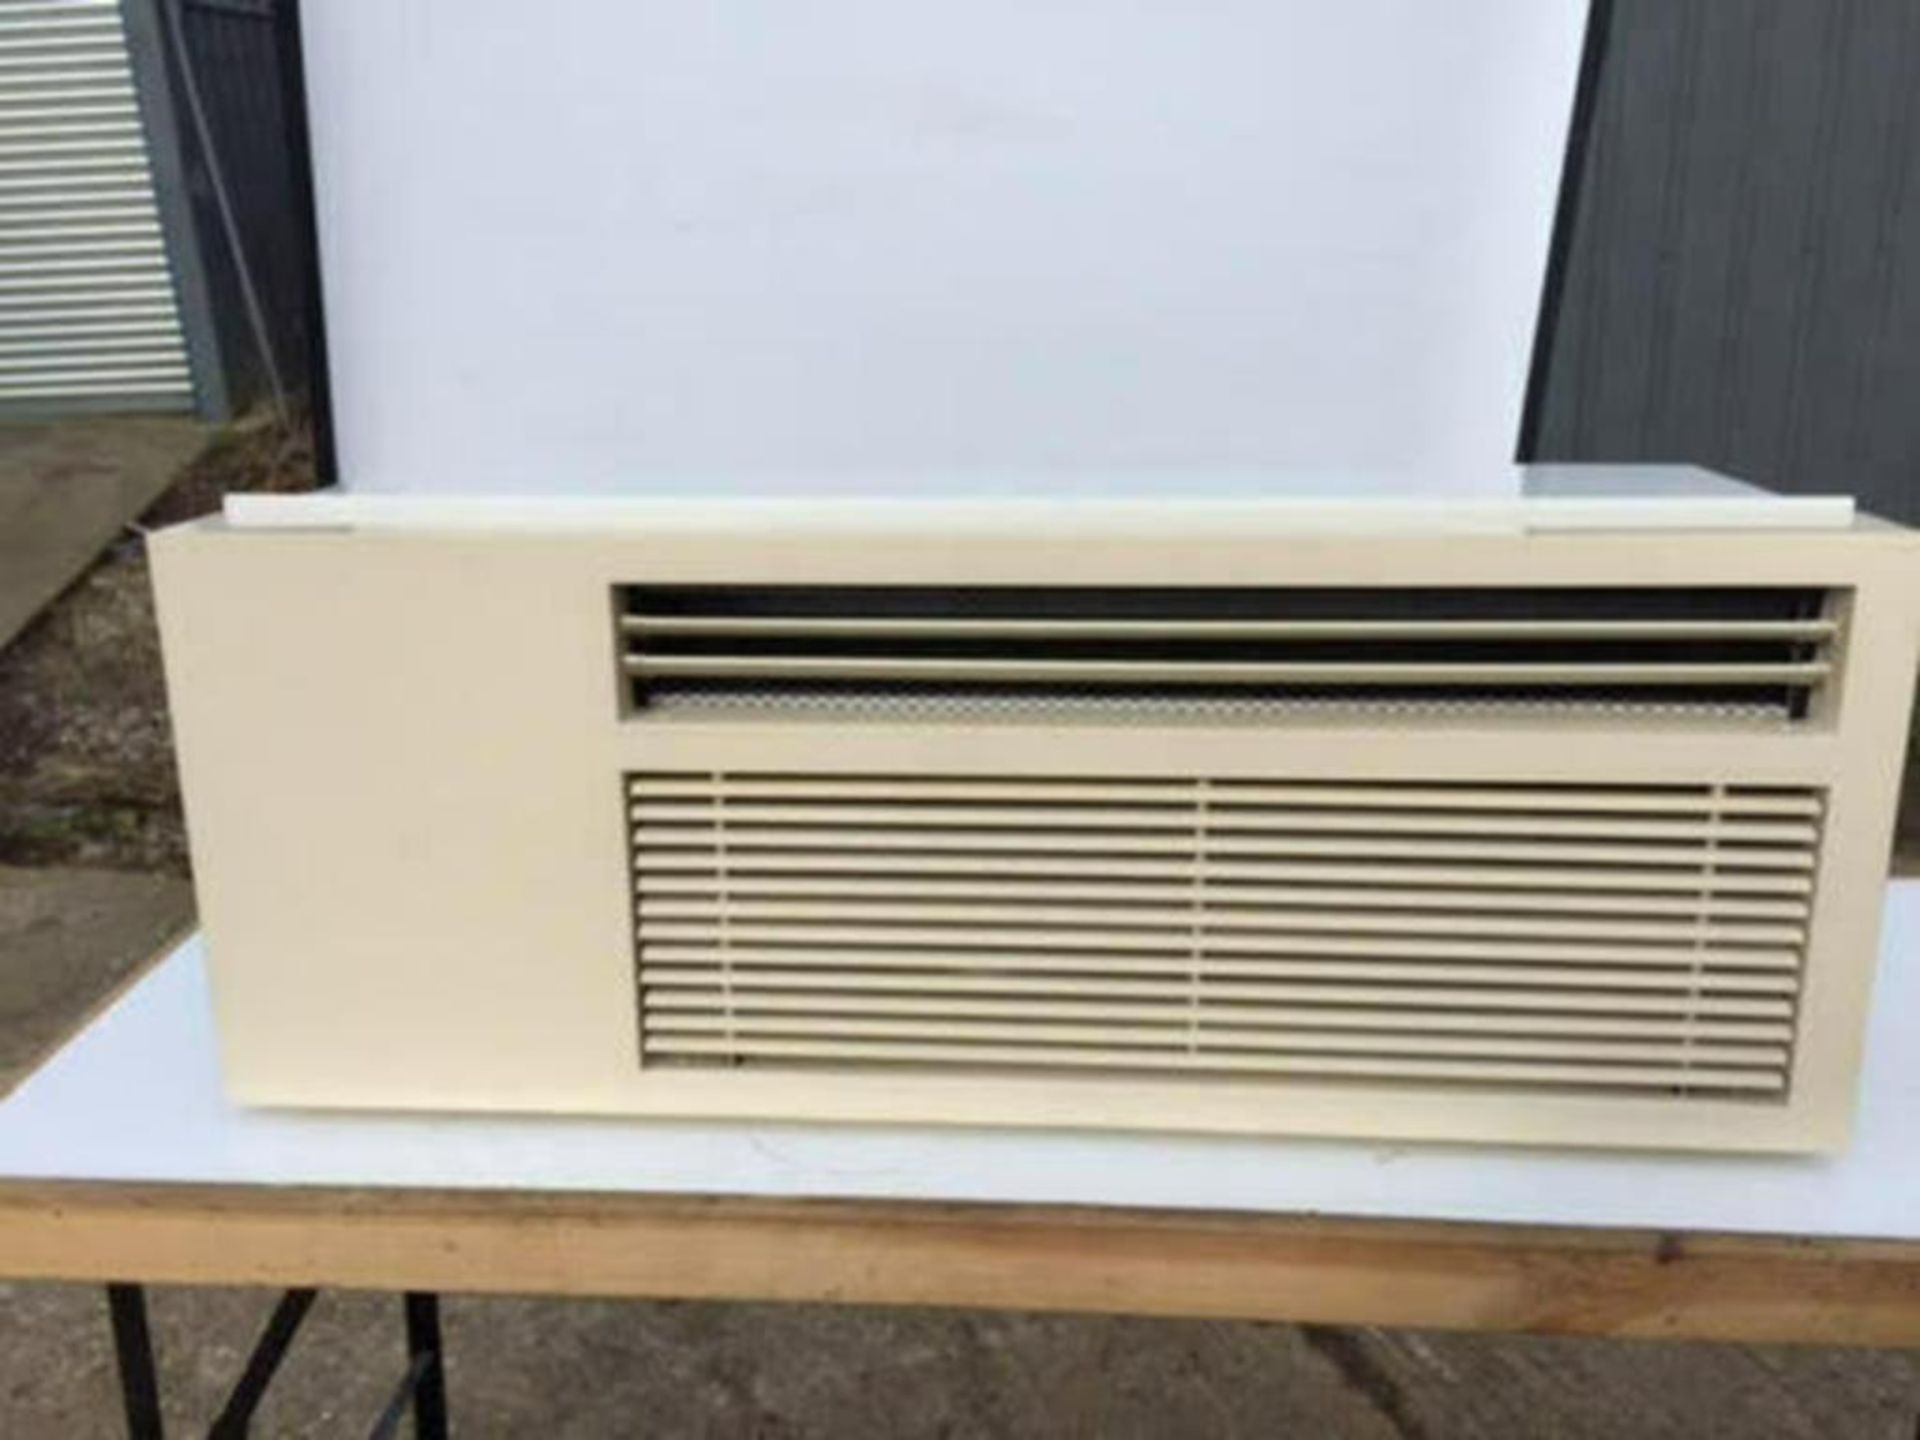 Brand New and Boxed Eco Air Conditioning Heat Pump Through Wall Unit - Image 9 of 11